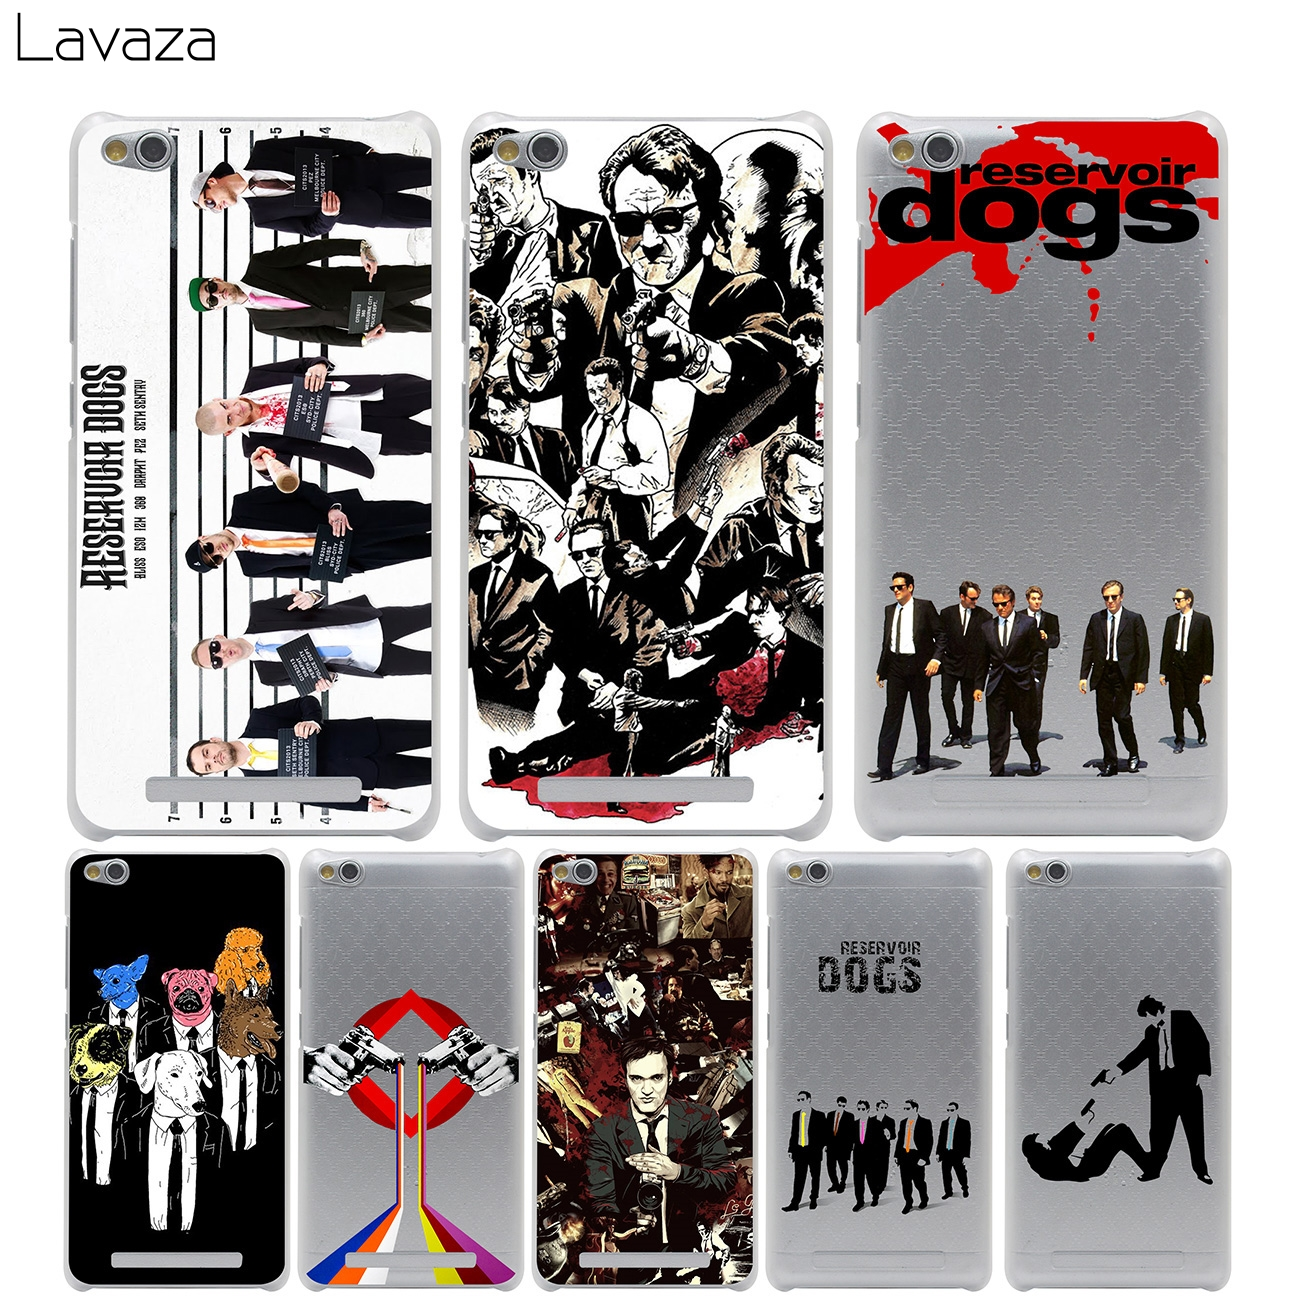 Lavaza Reservoir Dogs Cover Case For Xiaomi Redmi Note Mi 3 3s 4x Karet Swing Arm Rx King Bulet Spesial K Original Yamaha Japan Nzl Part 135cc 4 4a A1 5 5a 5s 5x Mi5 Mi6 Pro Plus